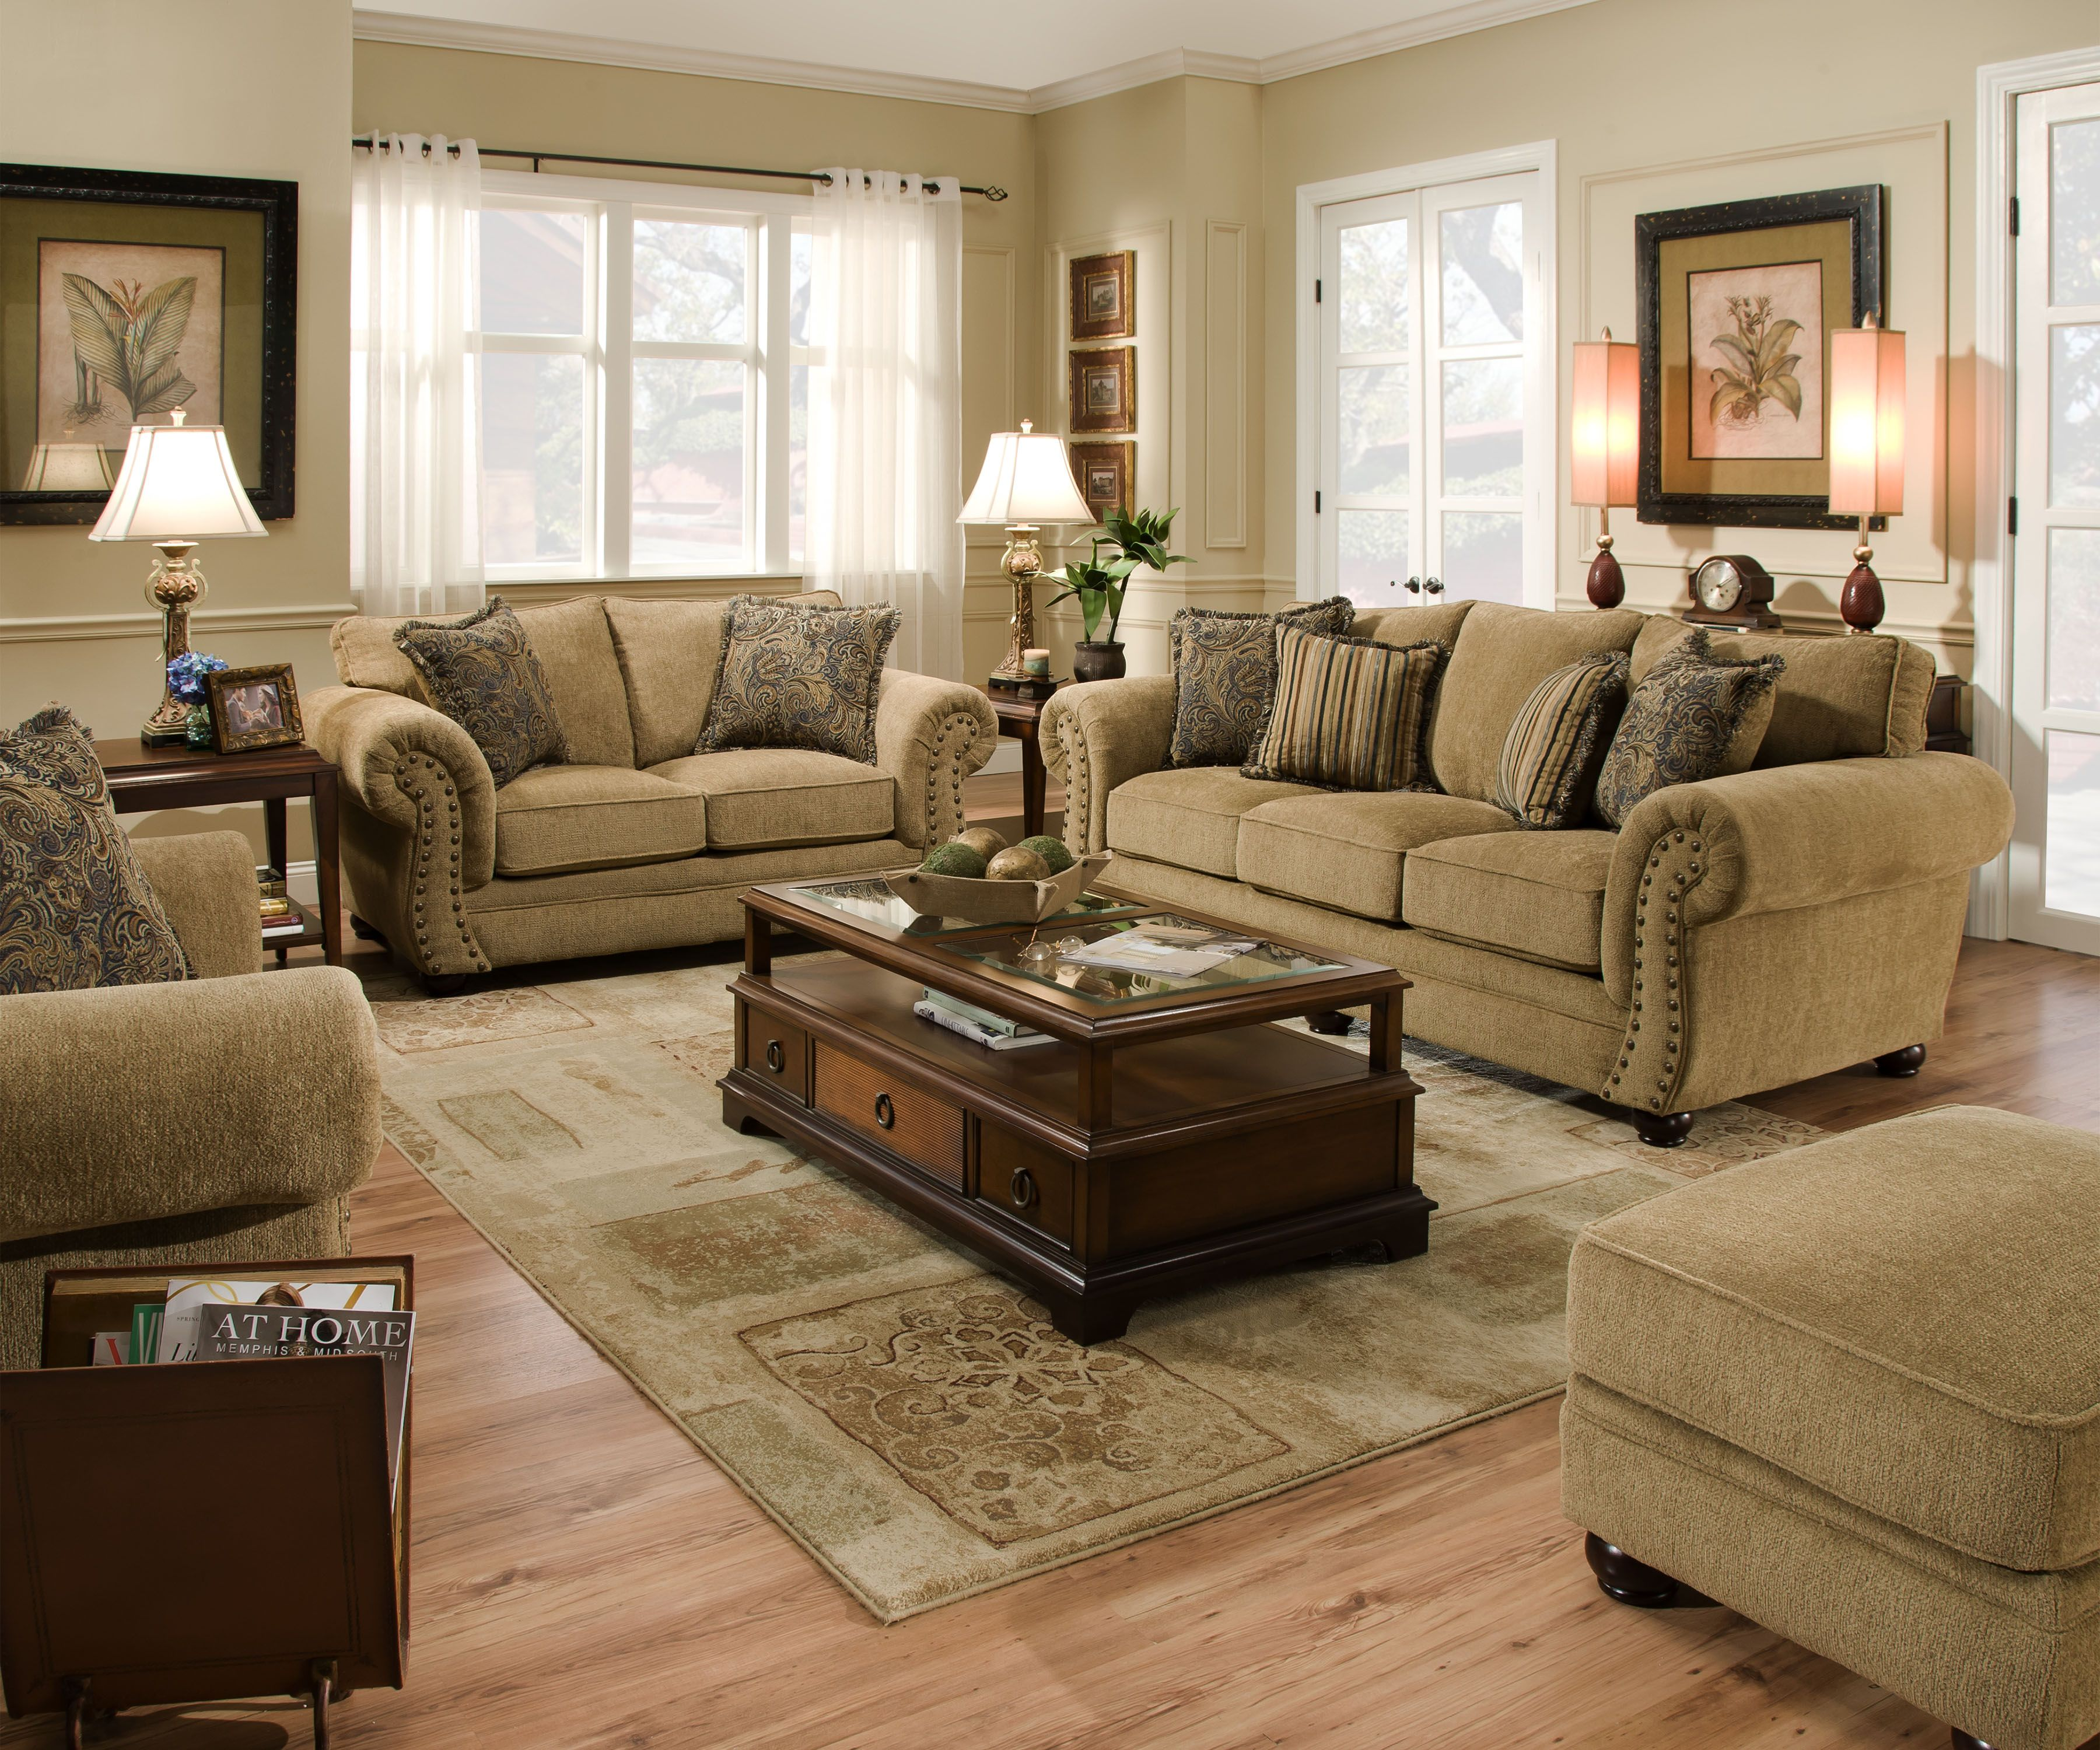 Beautiful Sears Outlet Patio Furniture